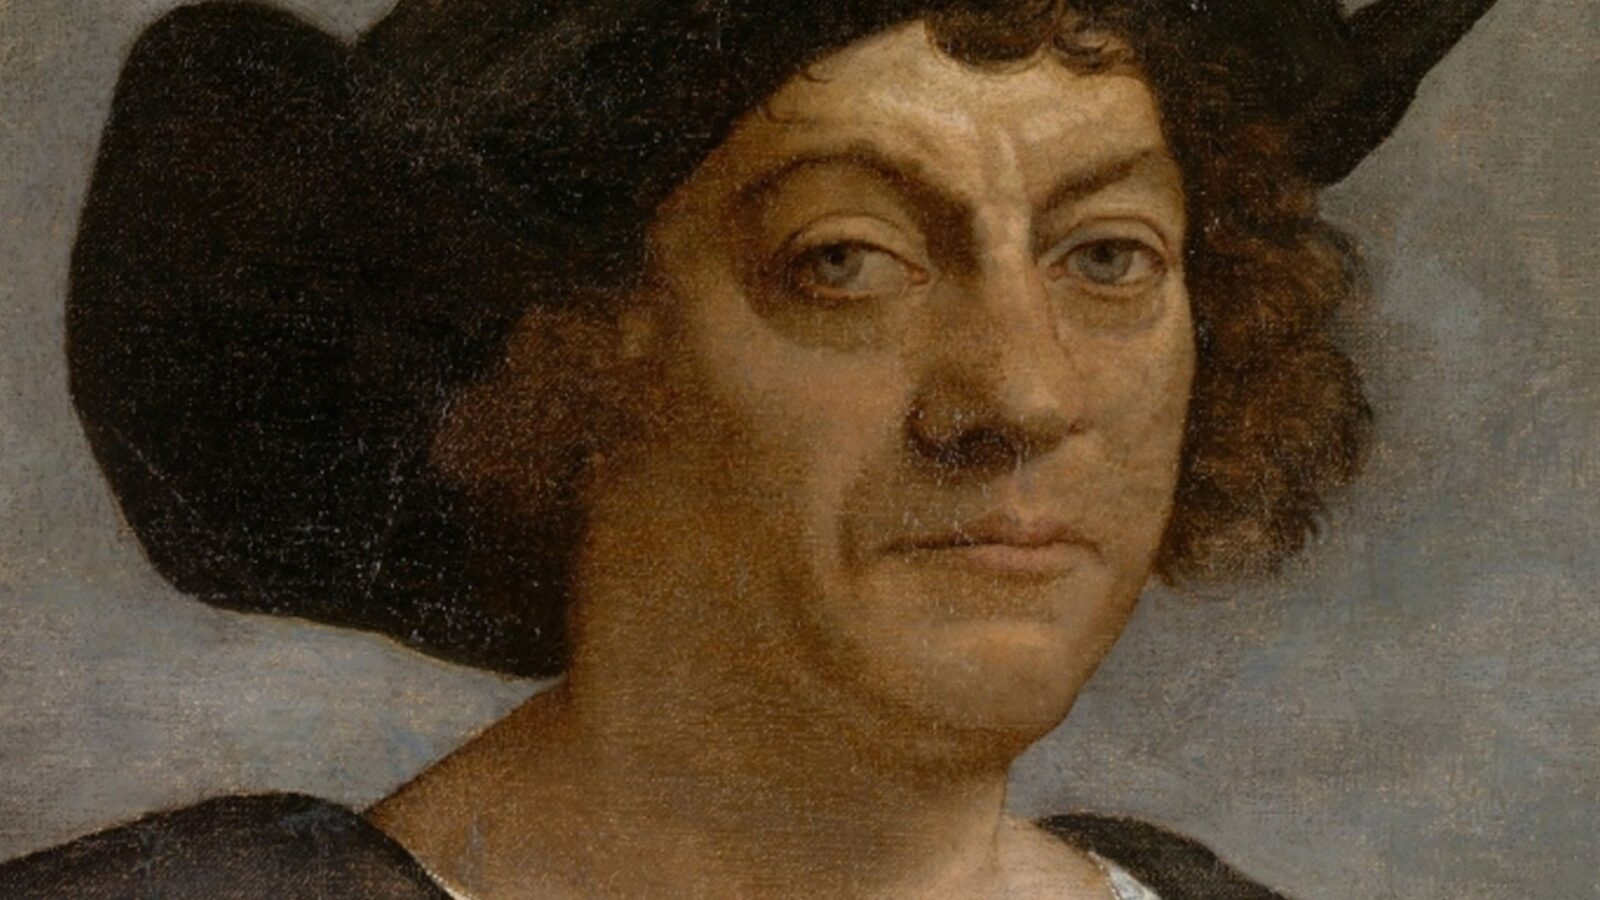 christopher columbus was a murderer essay Introduction christopher columbus is known as a great historical figure and was considered as one of the greatest mariners in history.